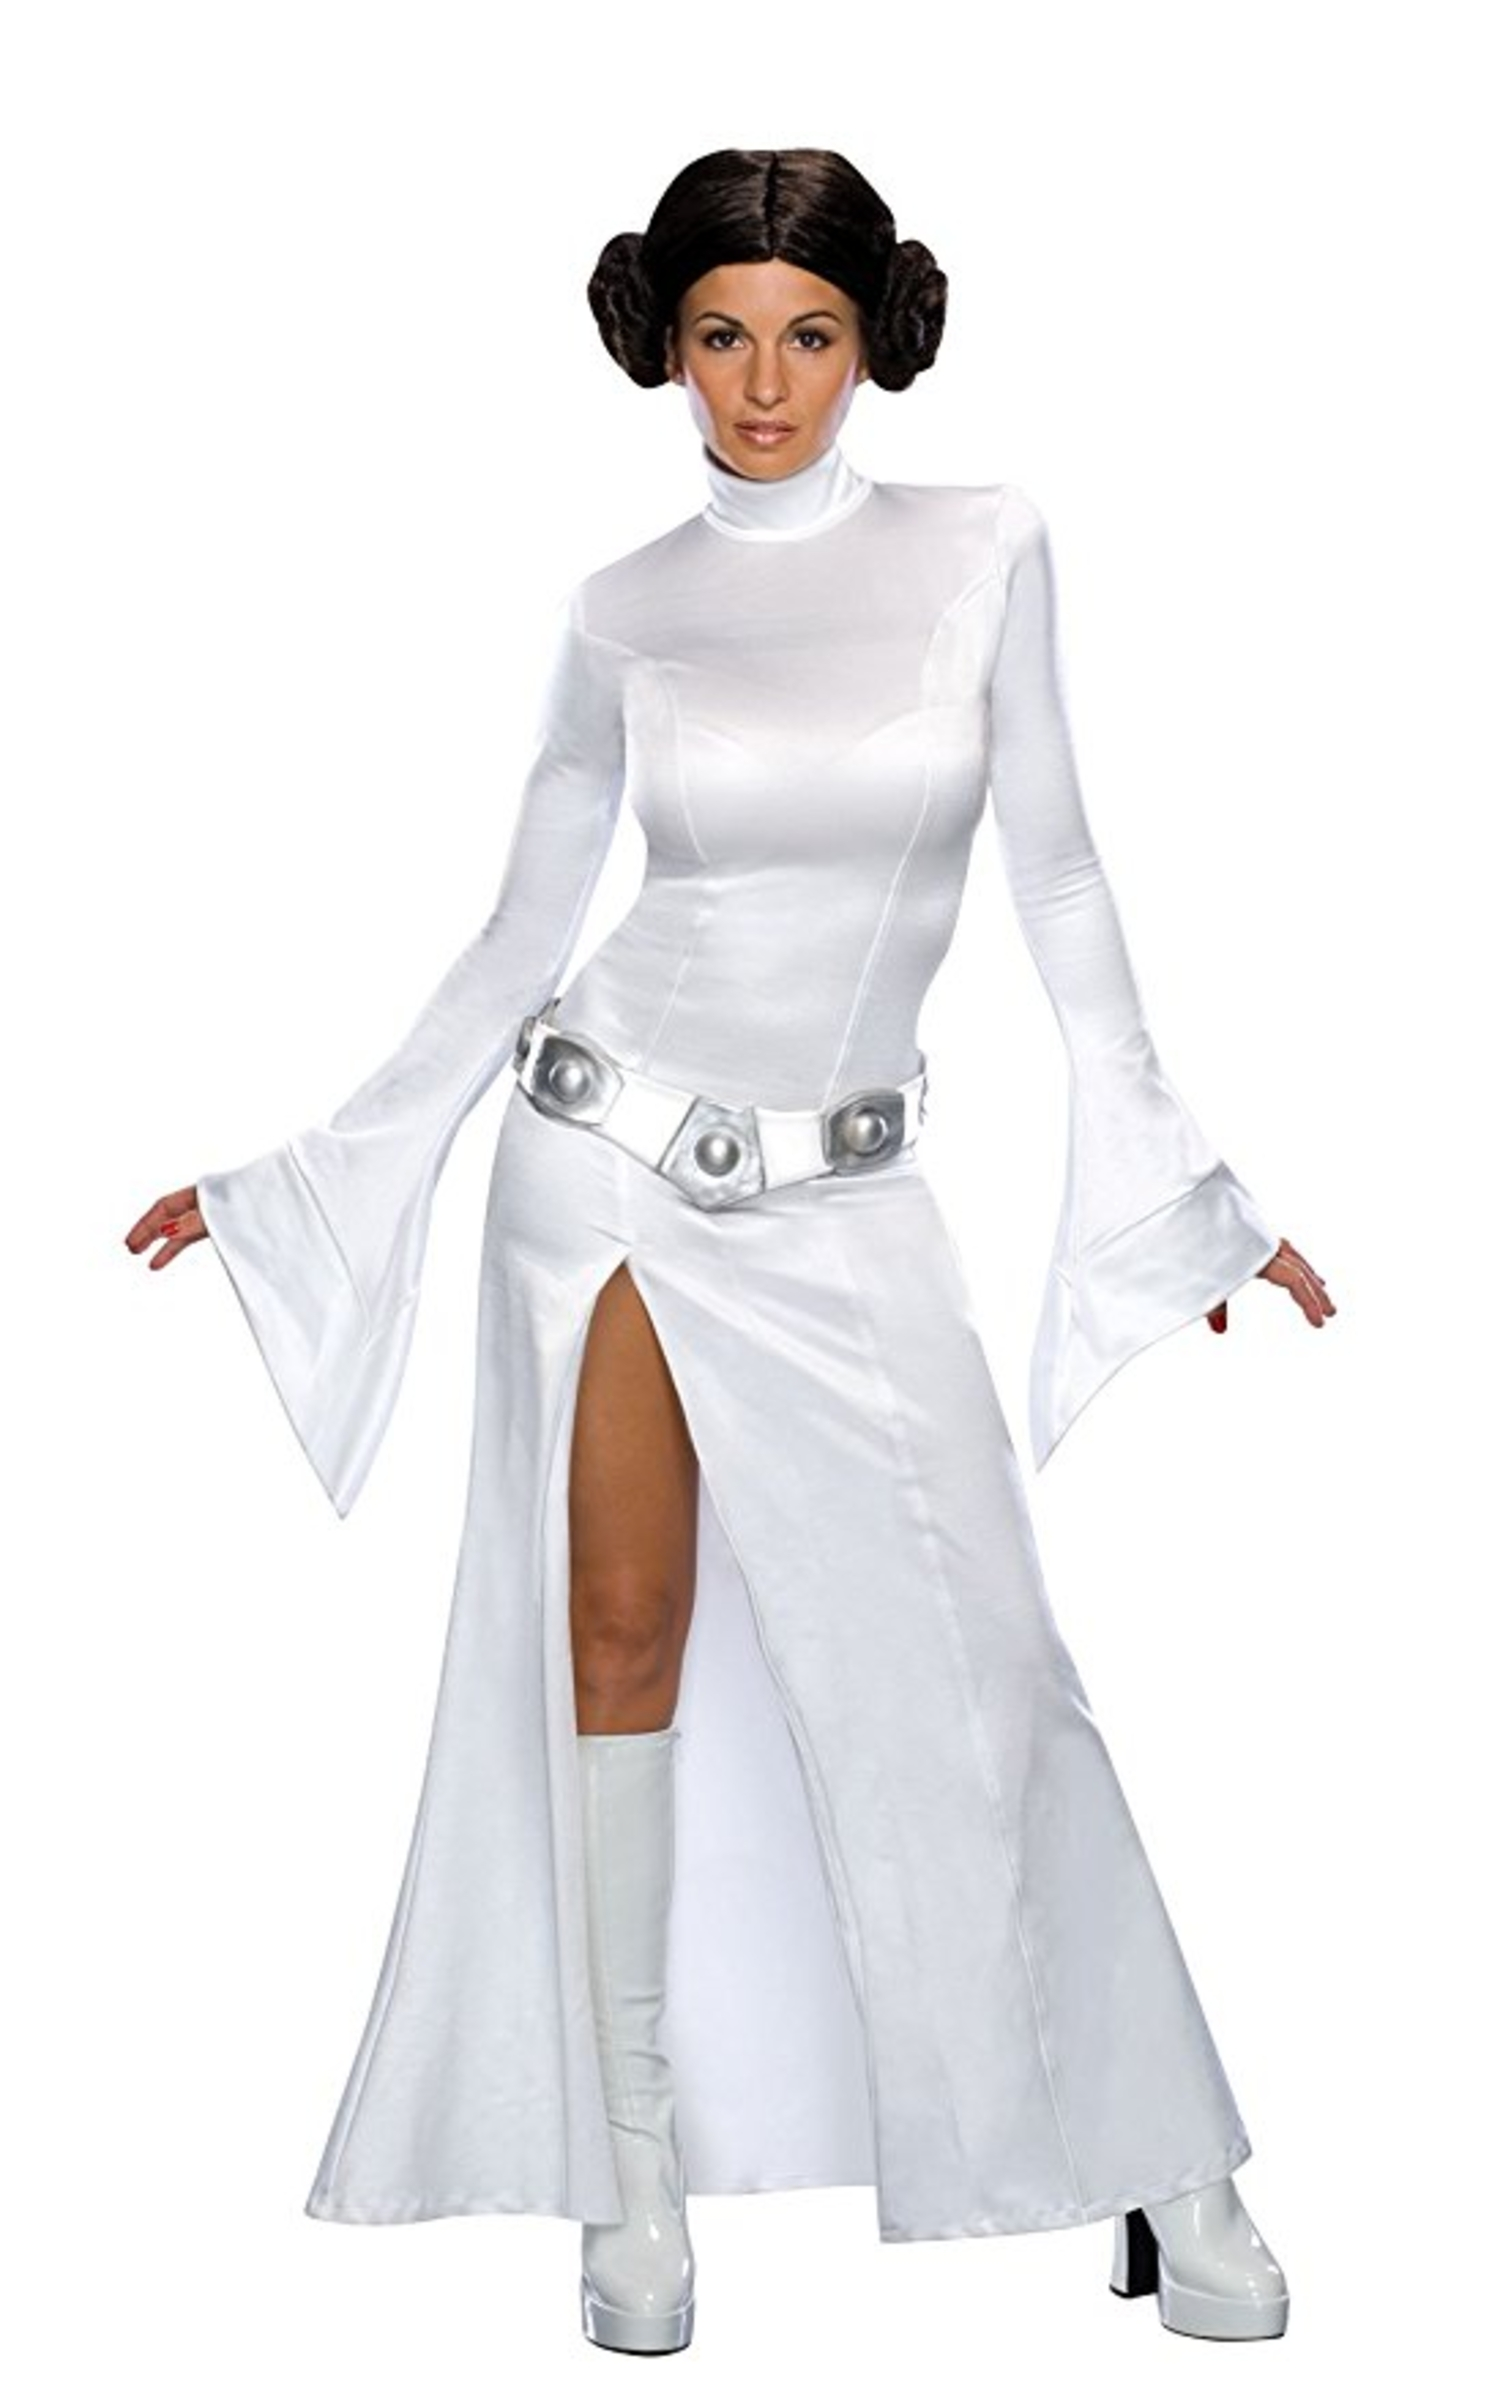 Princess Leia Halloween Costume.jpg